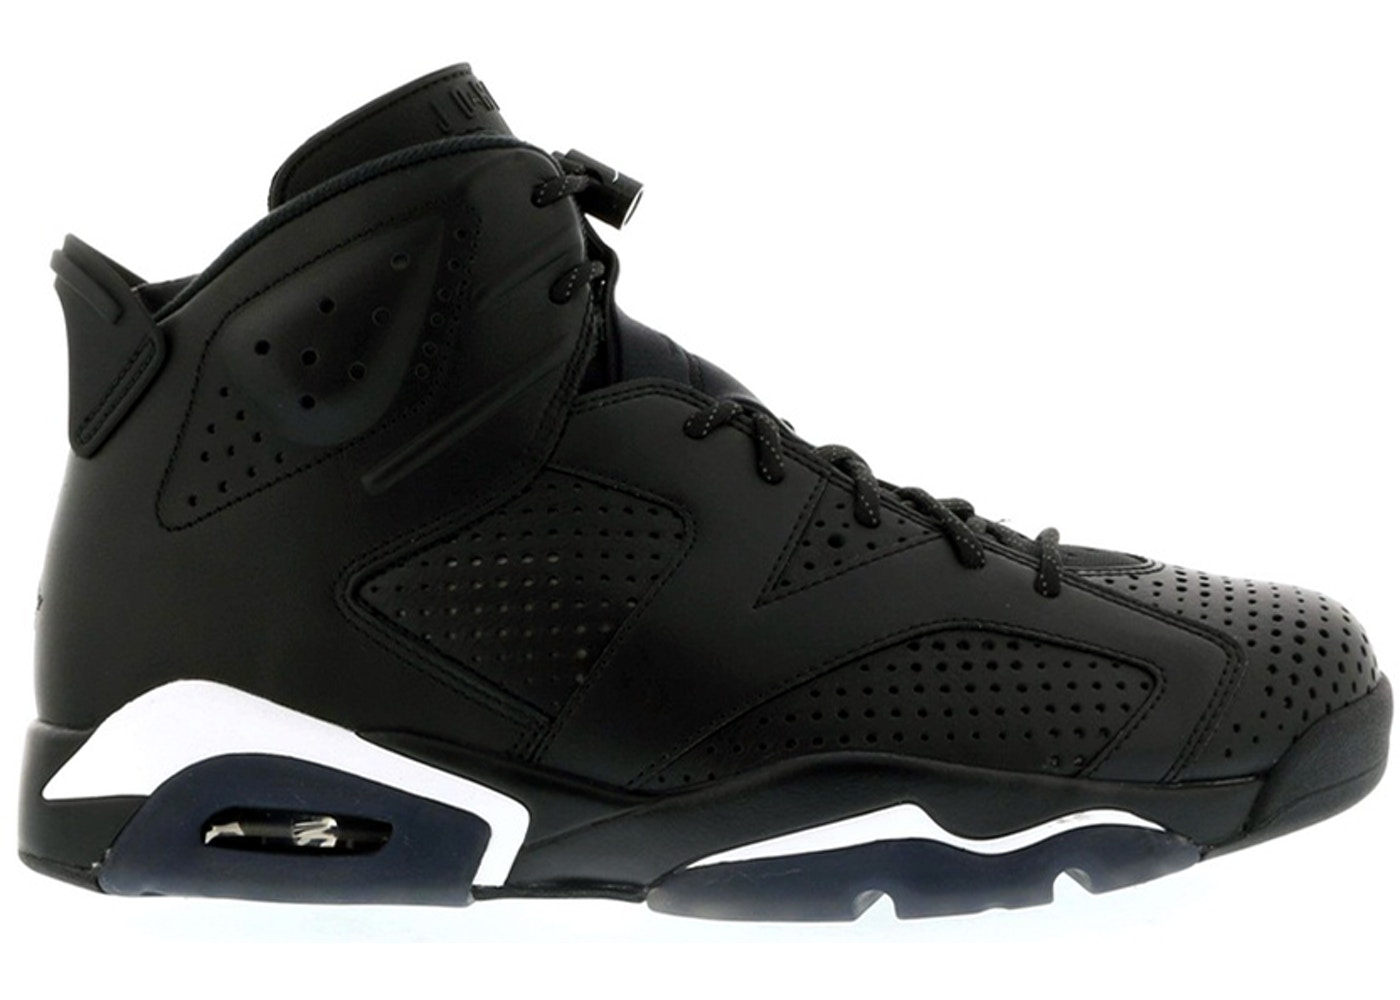 new product fbf7b f0995 Jordan 6 Retro Black Cat - 384664-020